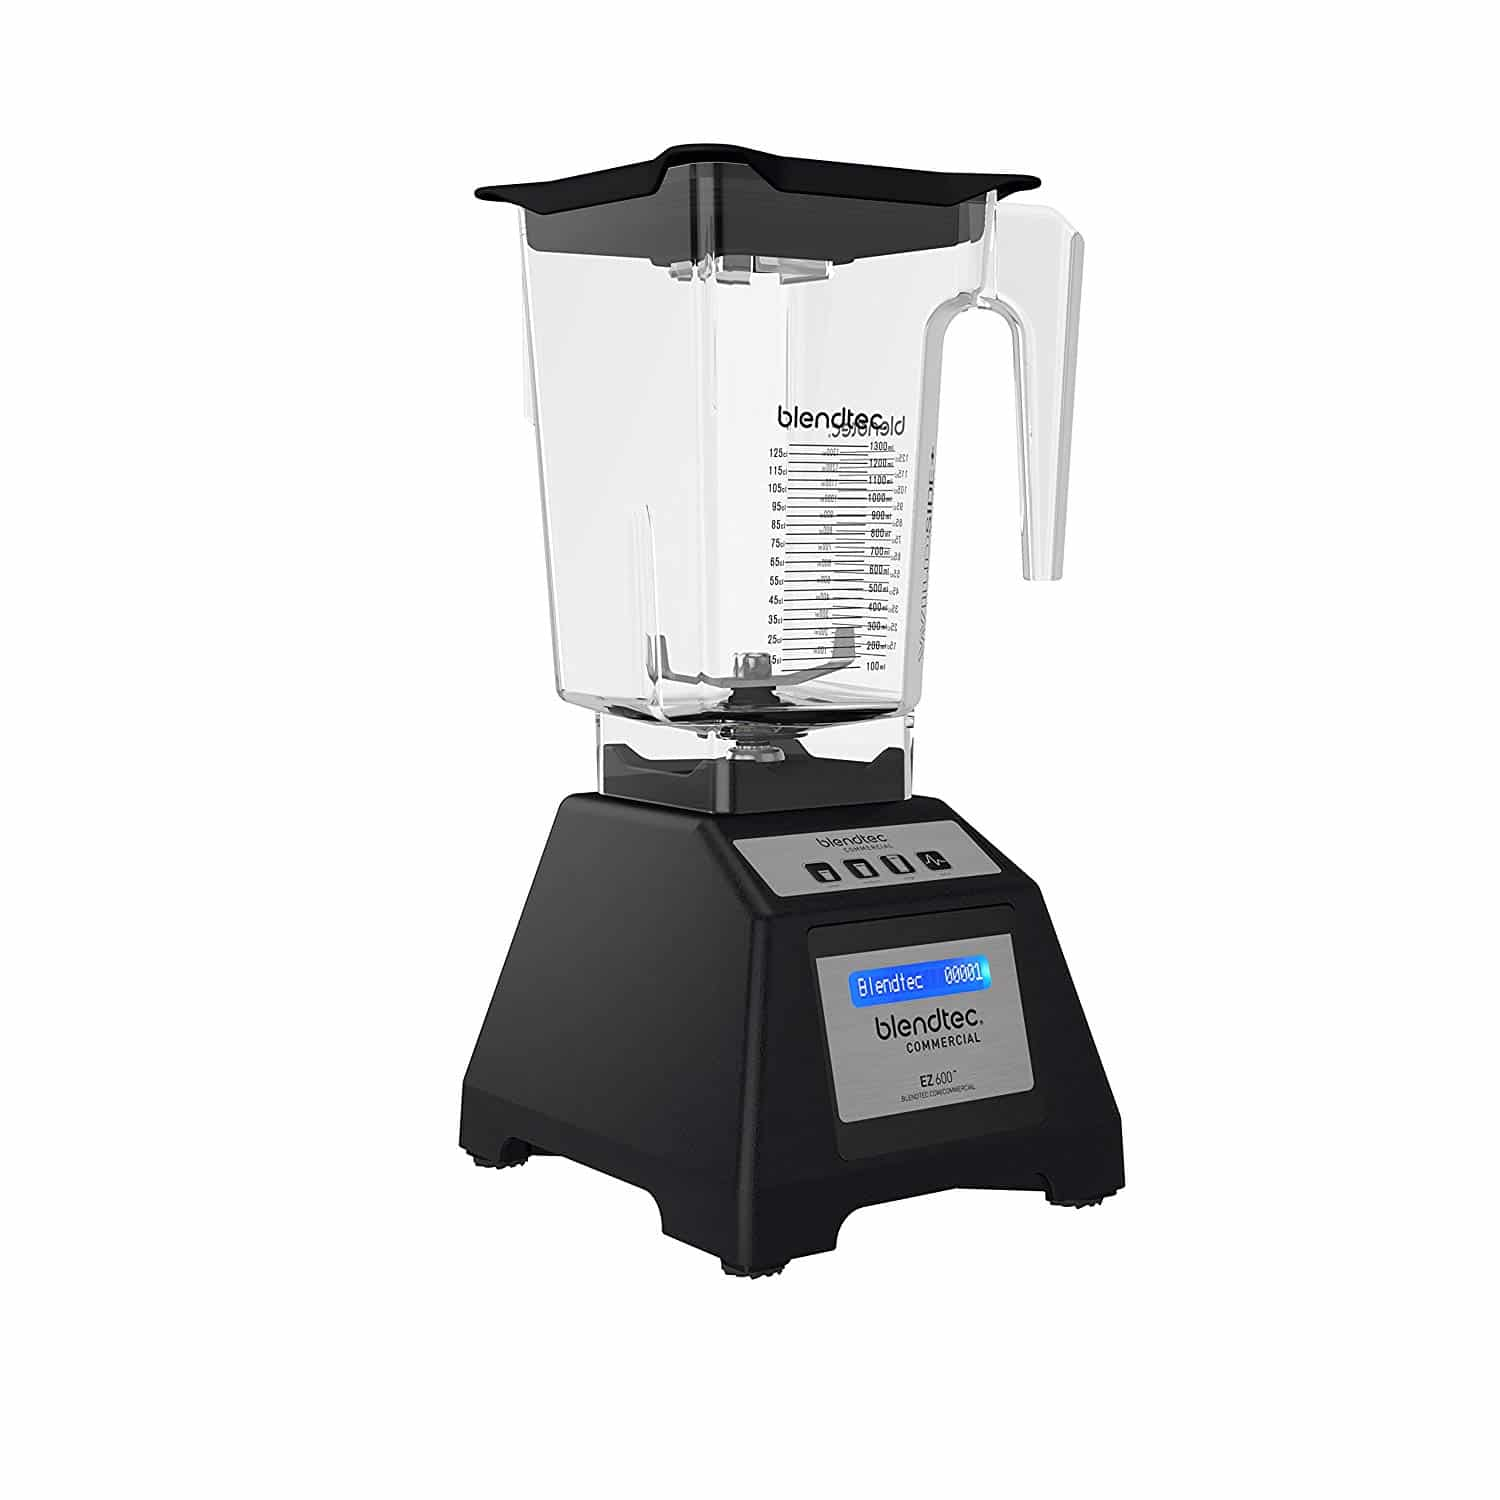 BlendTec EZ 600 + 1 FREE Case of Cappuccine